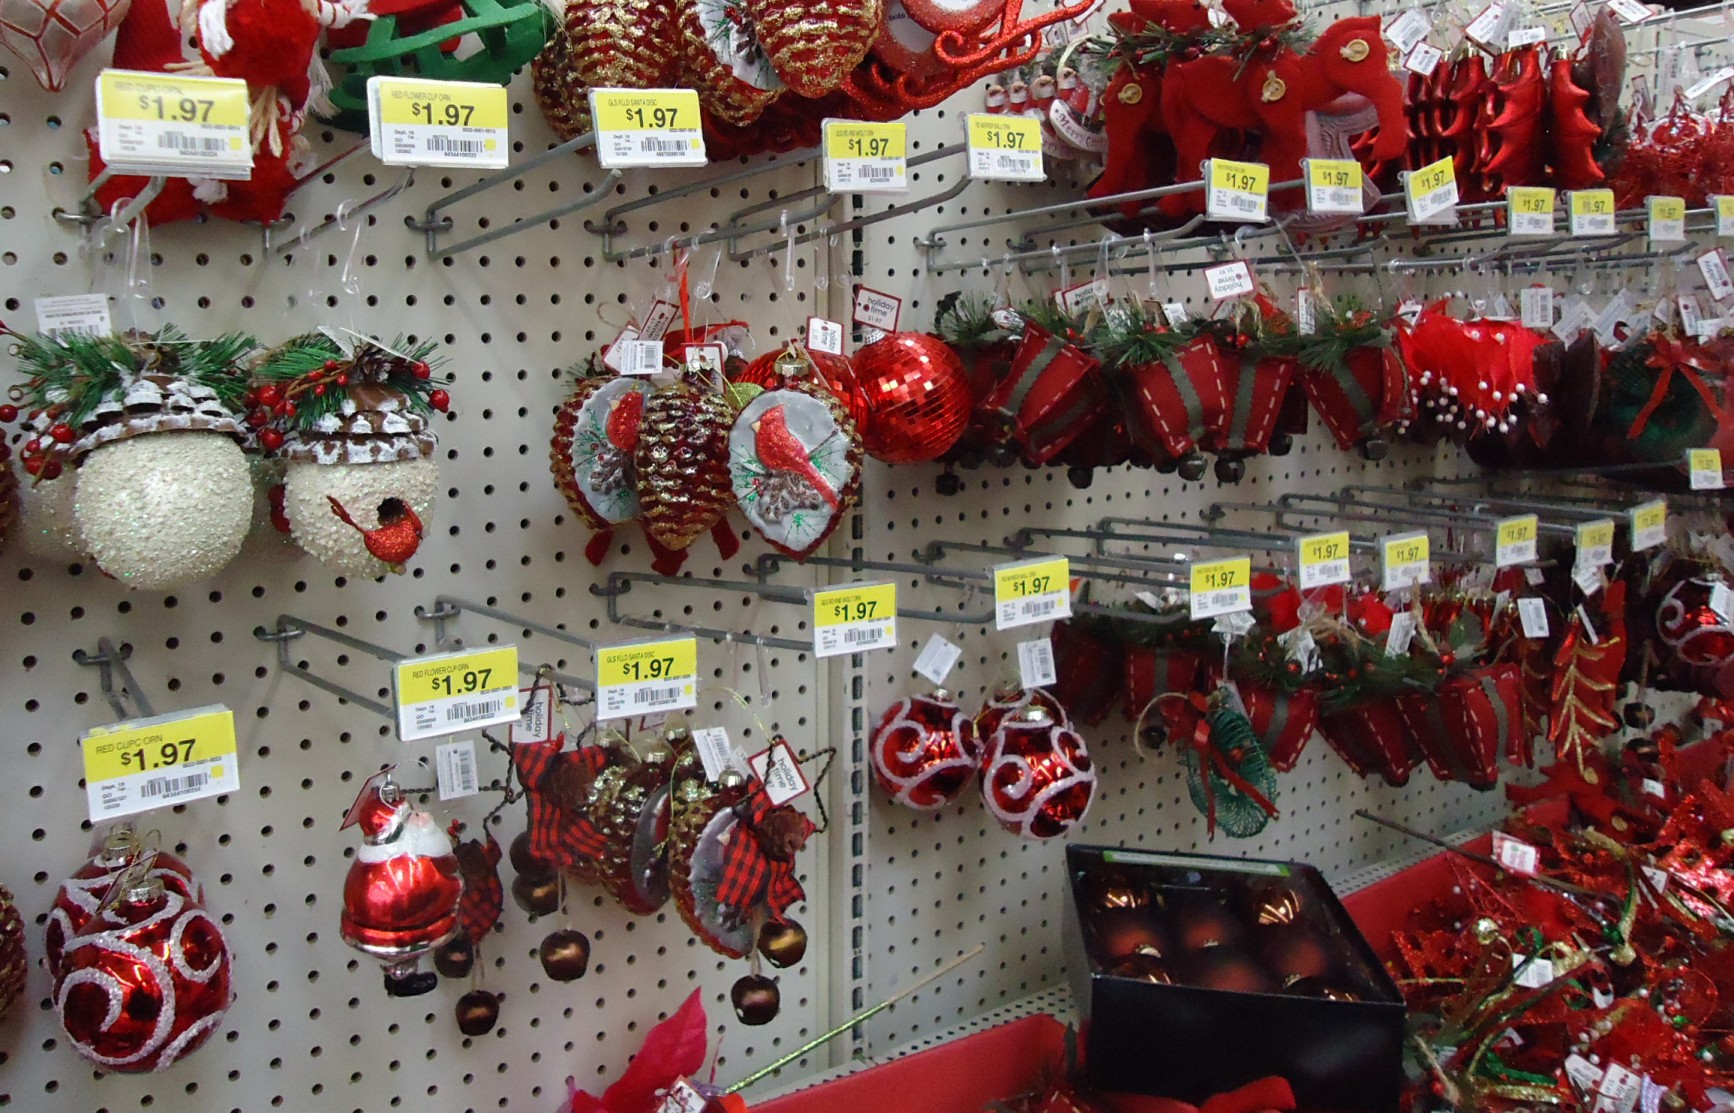 Christmas Decoration Ideas 2012 file:christmas decorations in a store assorted 9 - wikimedia